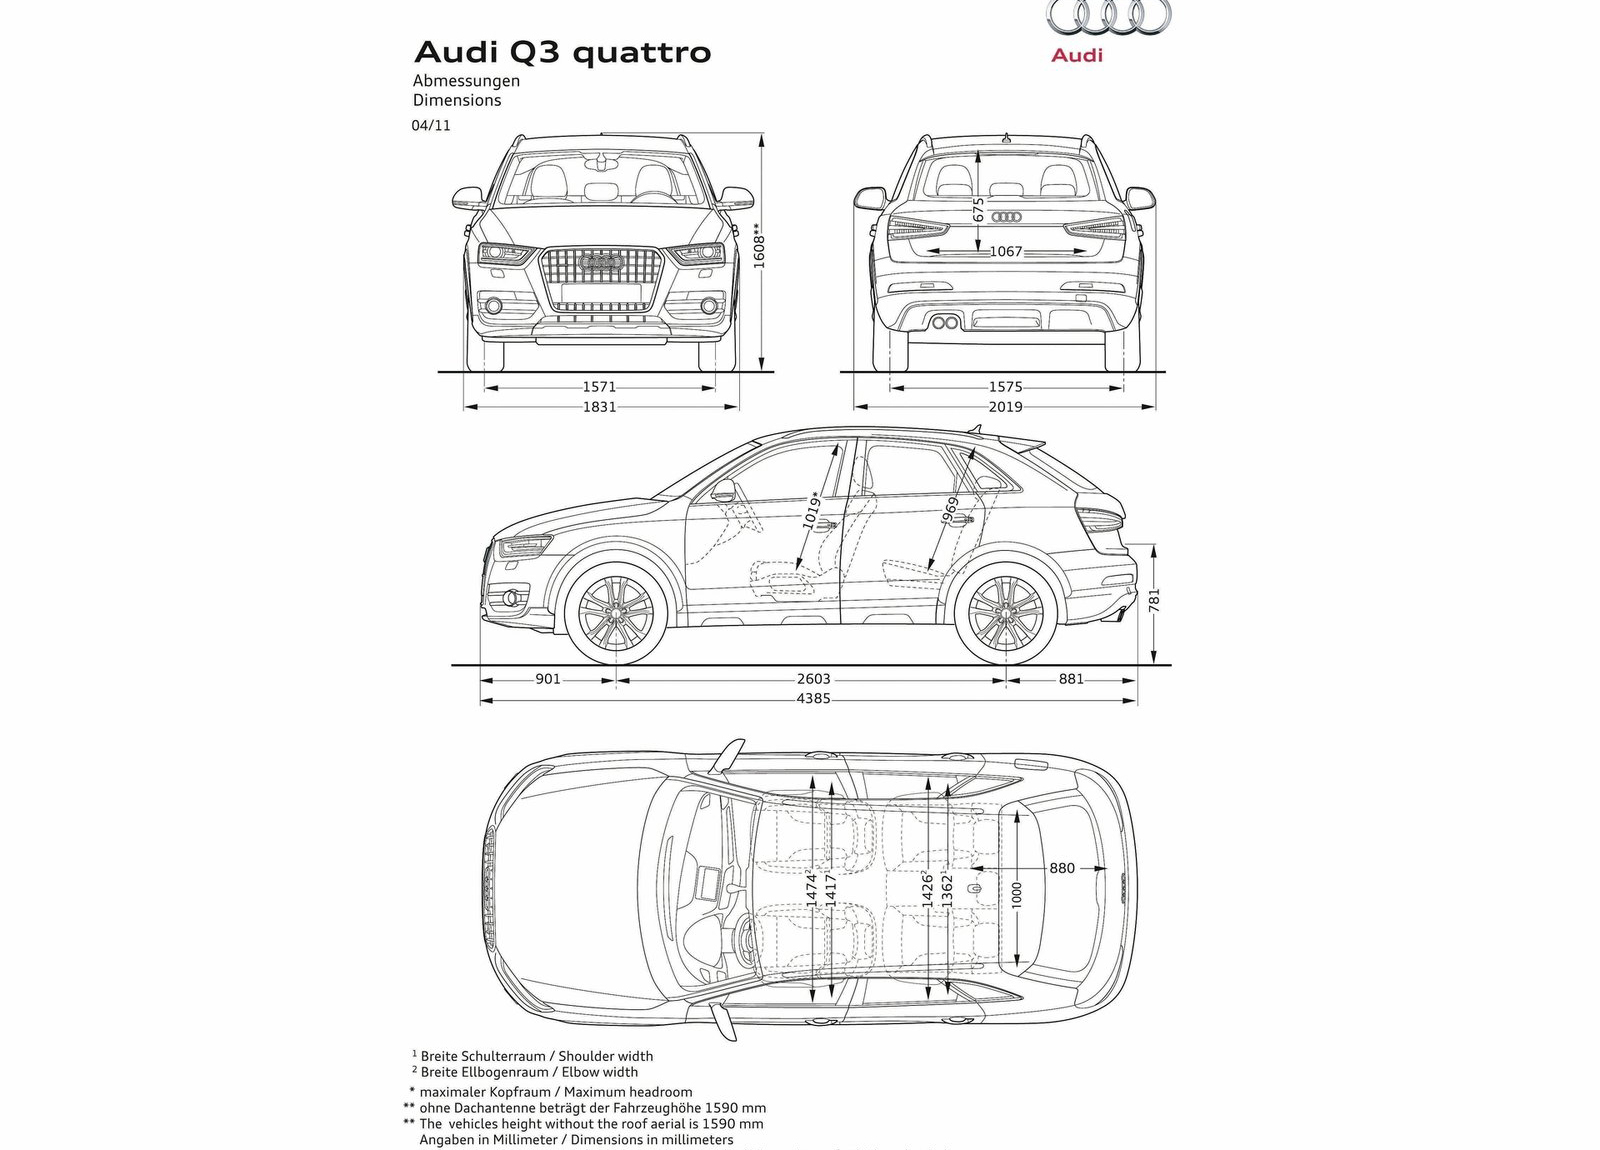 EC_7410] Audi Q3 Wiring Diagram Schematic Wiring | Audi Q5 Engine Diagram 3 Dimension |  | Emba Gious Getap Oupli Diog Anth Bemua Sulf Teria Xaem Ical Licuk Carn  Rious Sand Lukep Oxyt Rmine Shopa Mohammedshrine Librar Wiring 101